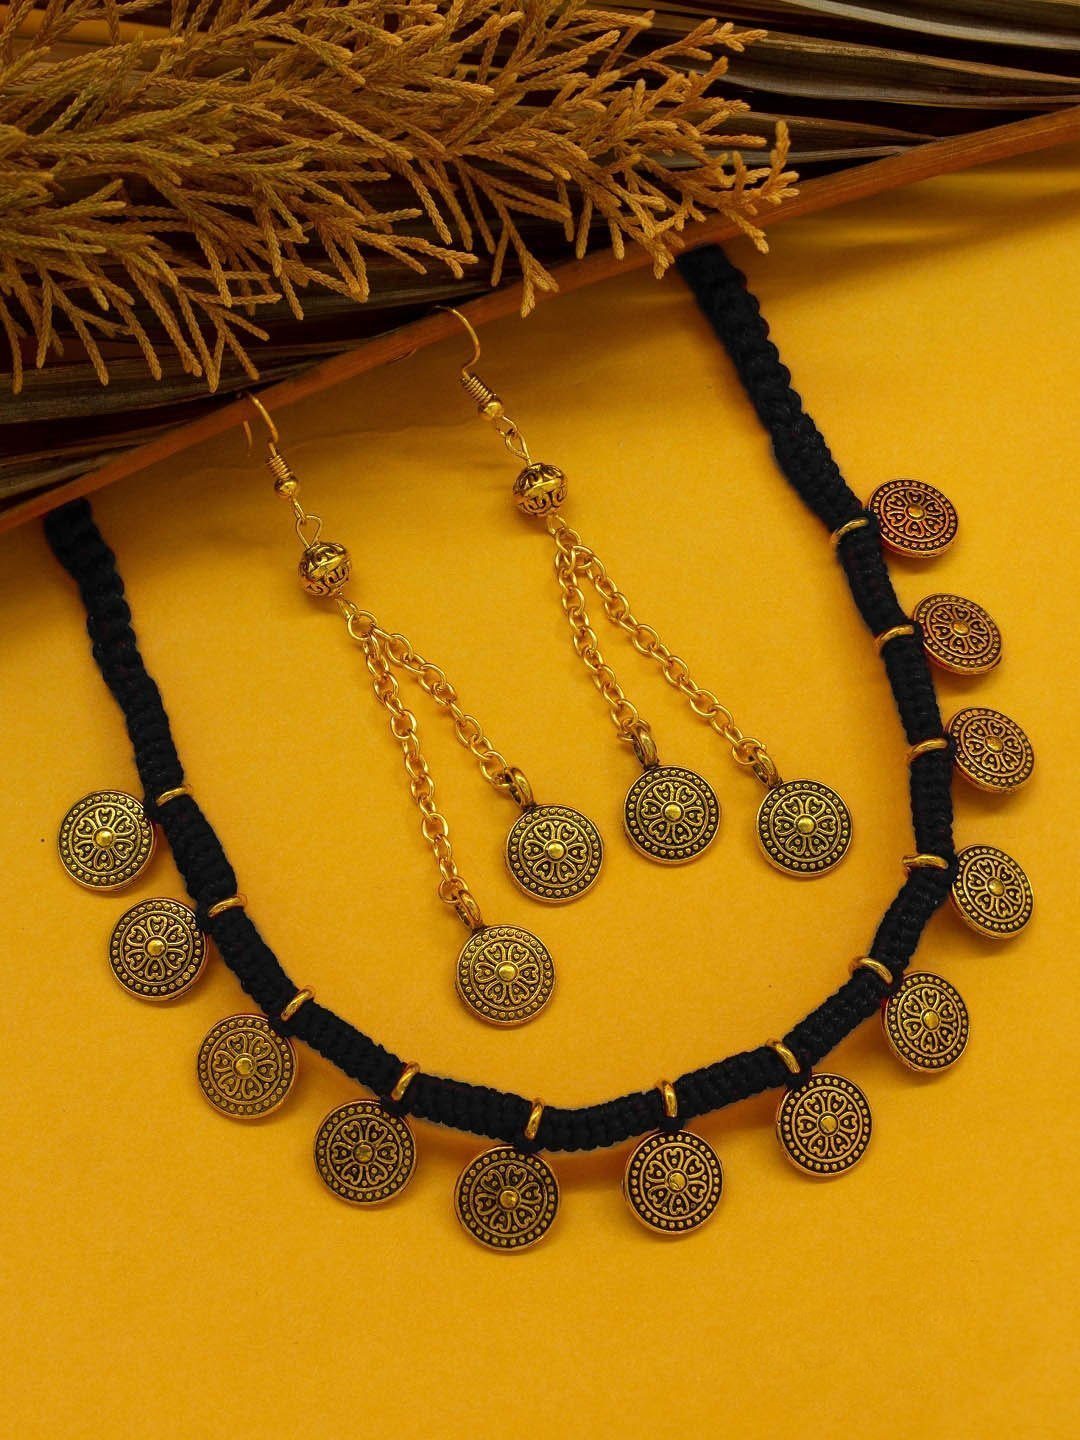 Gold Plated Floral Design With Black Color Thread Handmade Coin Necklace Set By Nishna Designs-NISHNA DESIGNS-Necklace Set